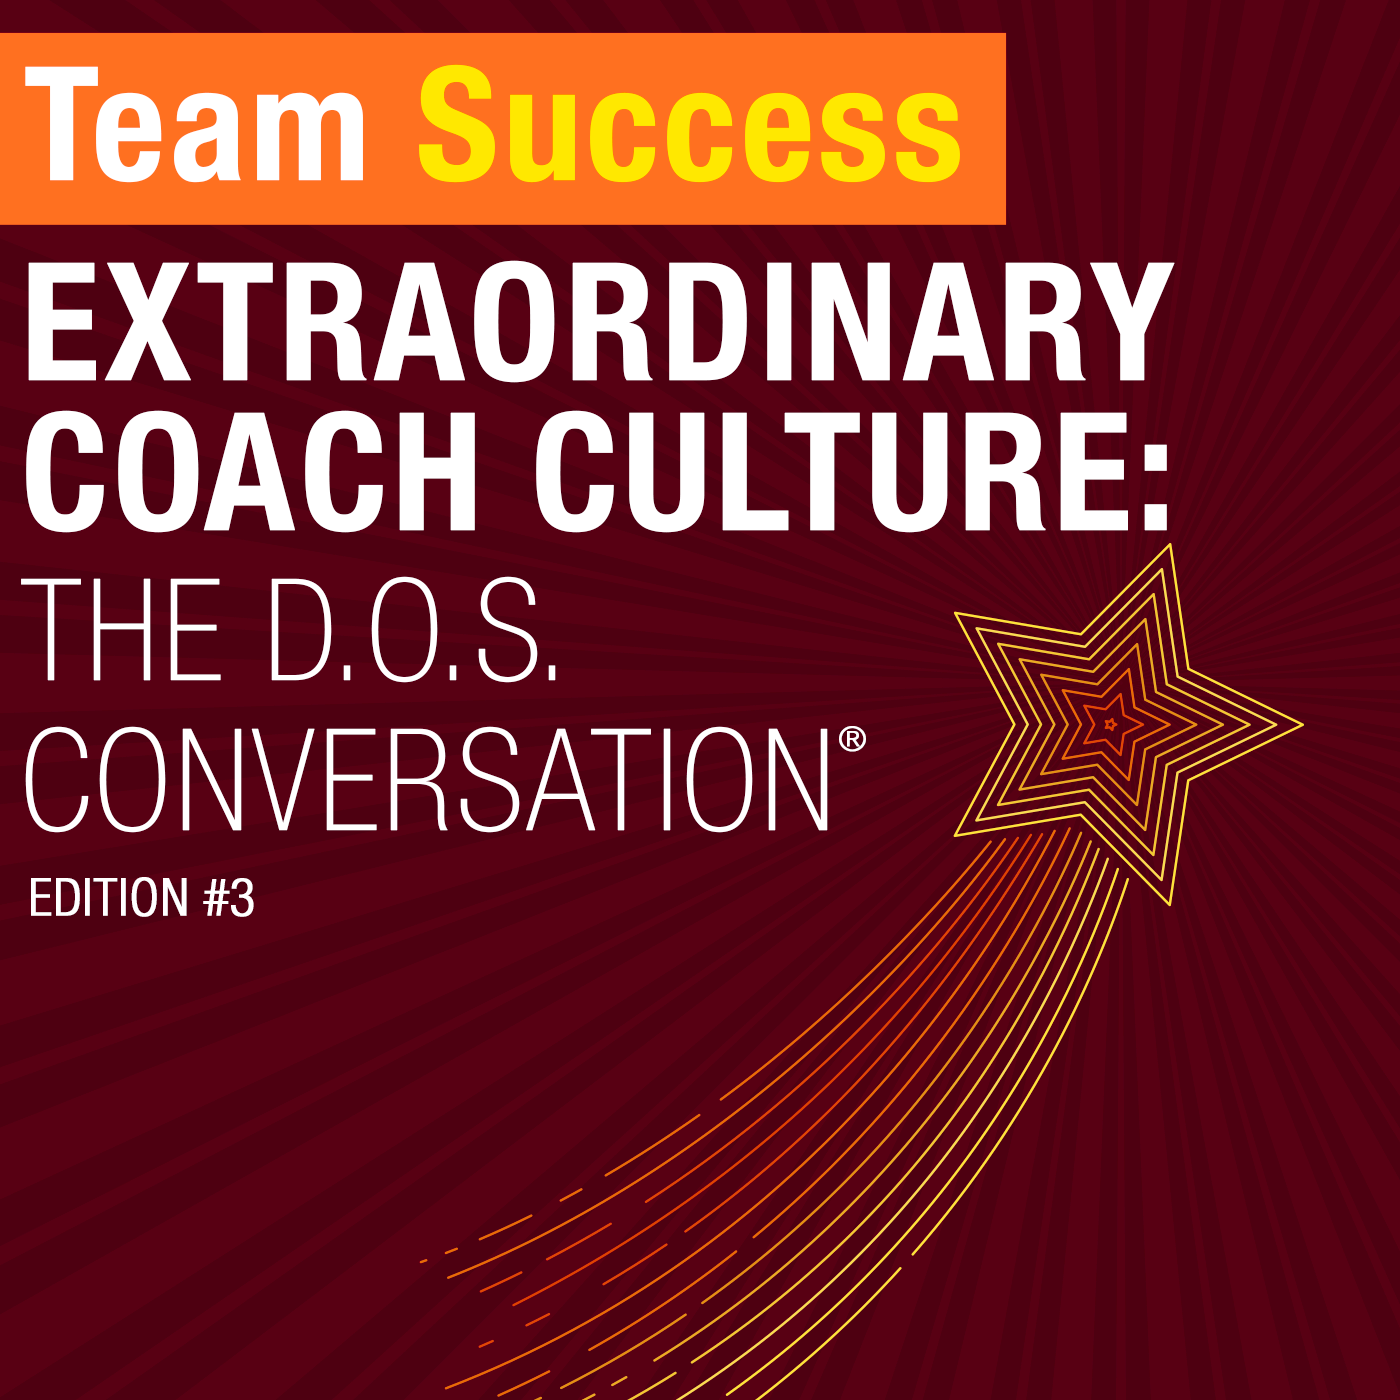 Extraordinary Coach Culture: The D.O.S. Conversation